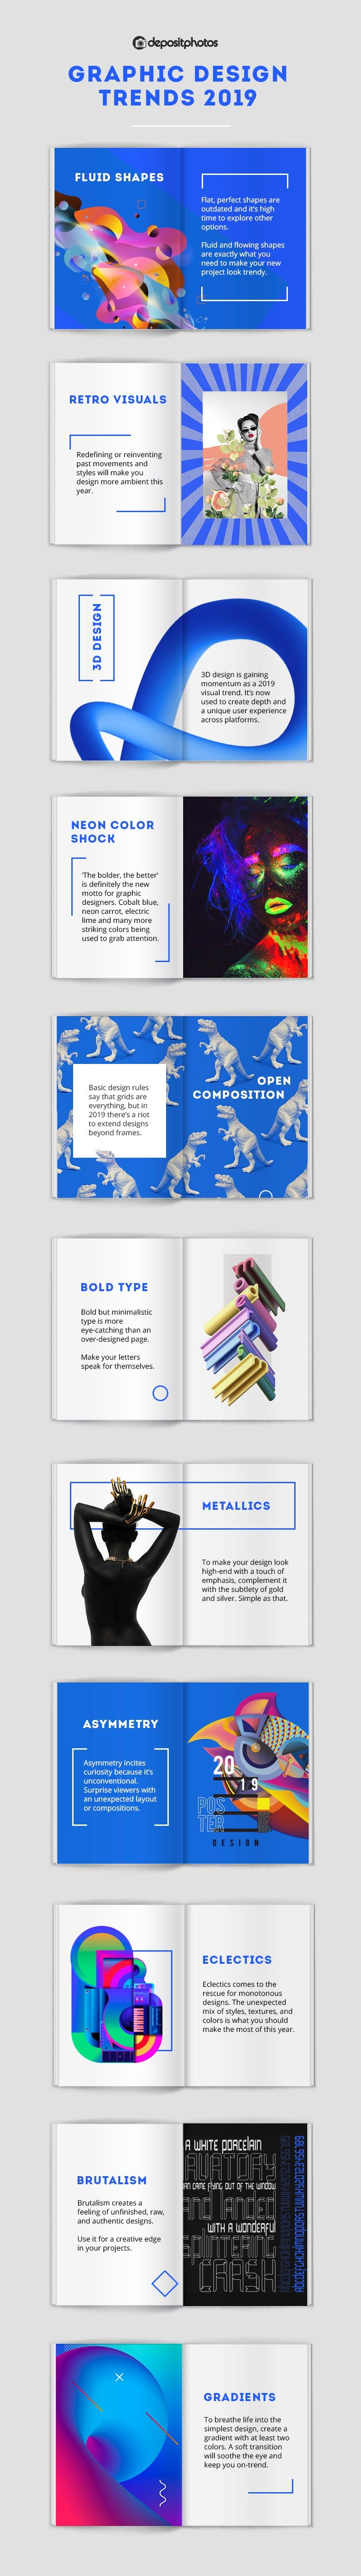 Infograhic lists 11 key design trends of note for 2019